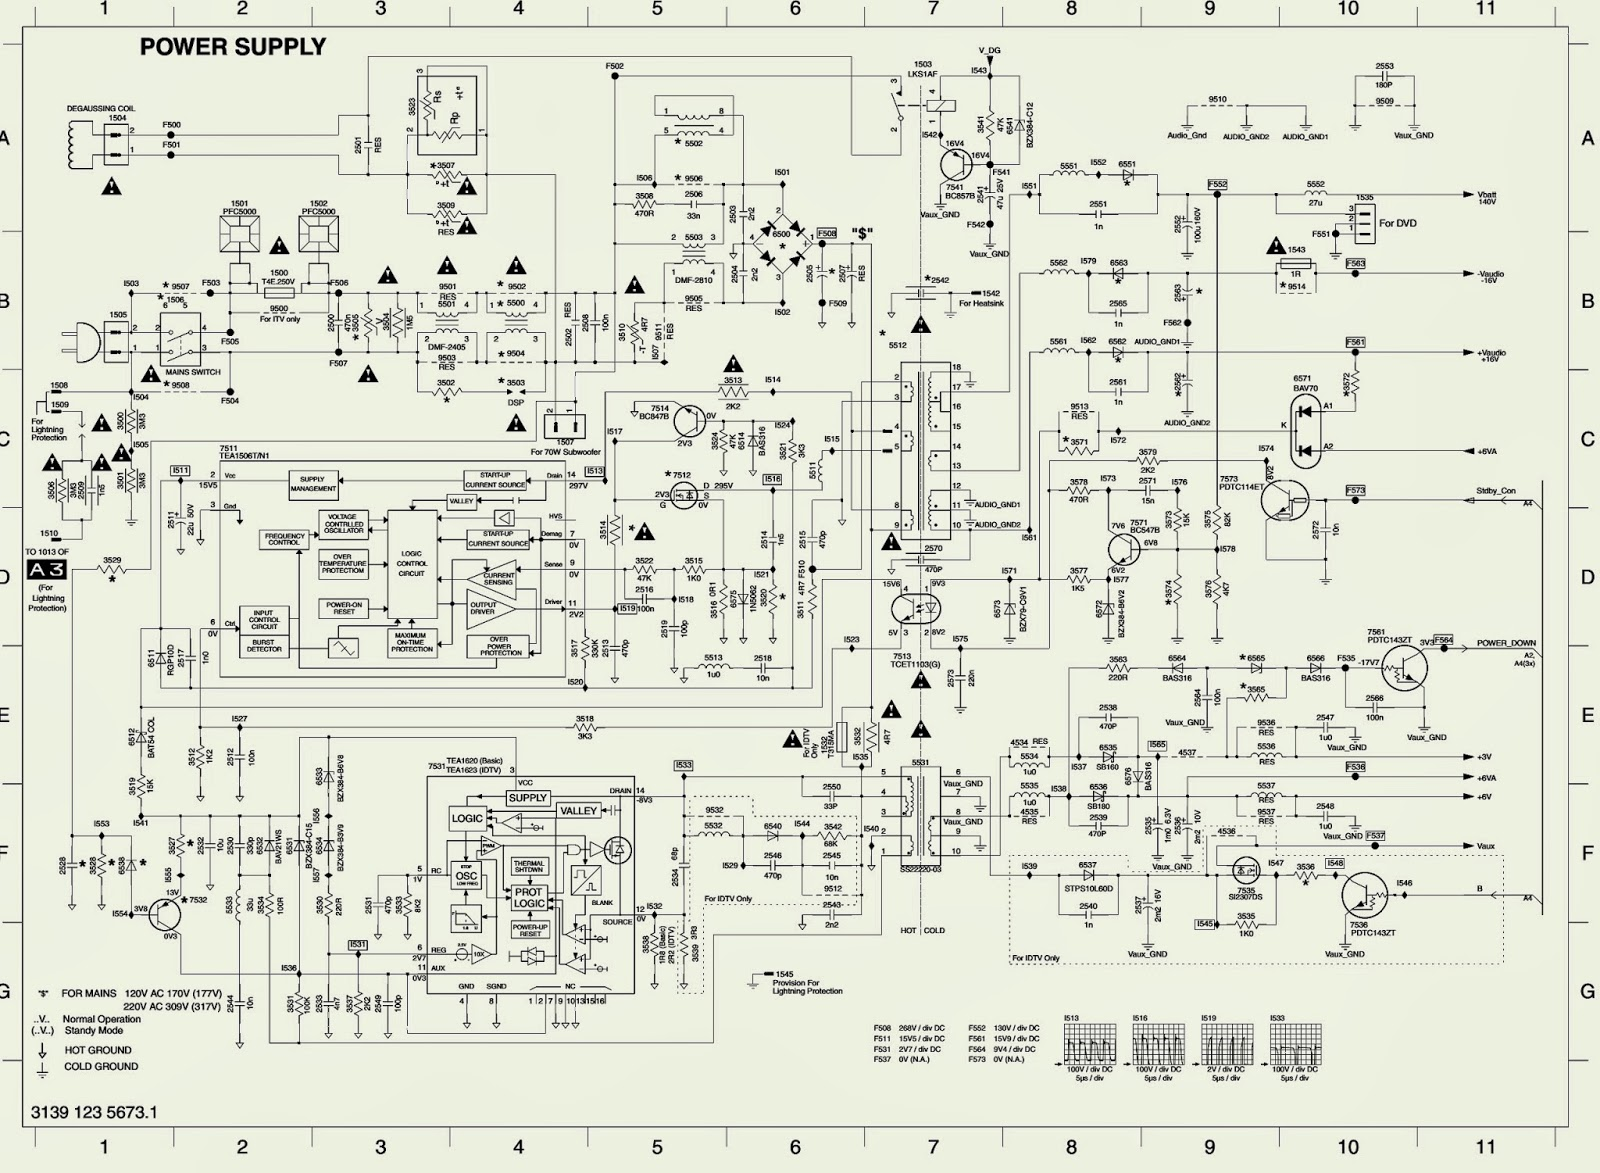 Philips Tv Circuit Diagram 26 Wiring Images 40pfl3606 Lcd Power Supply Schematic Electro Help L04a Chassis Smps Scan Out